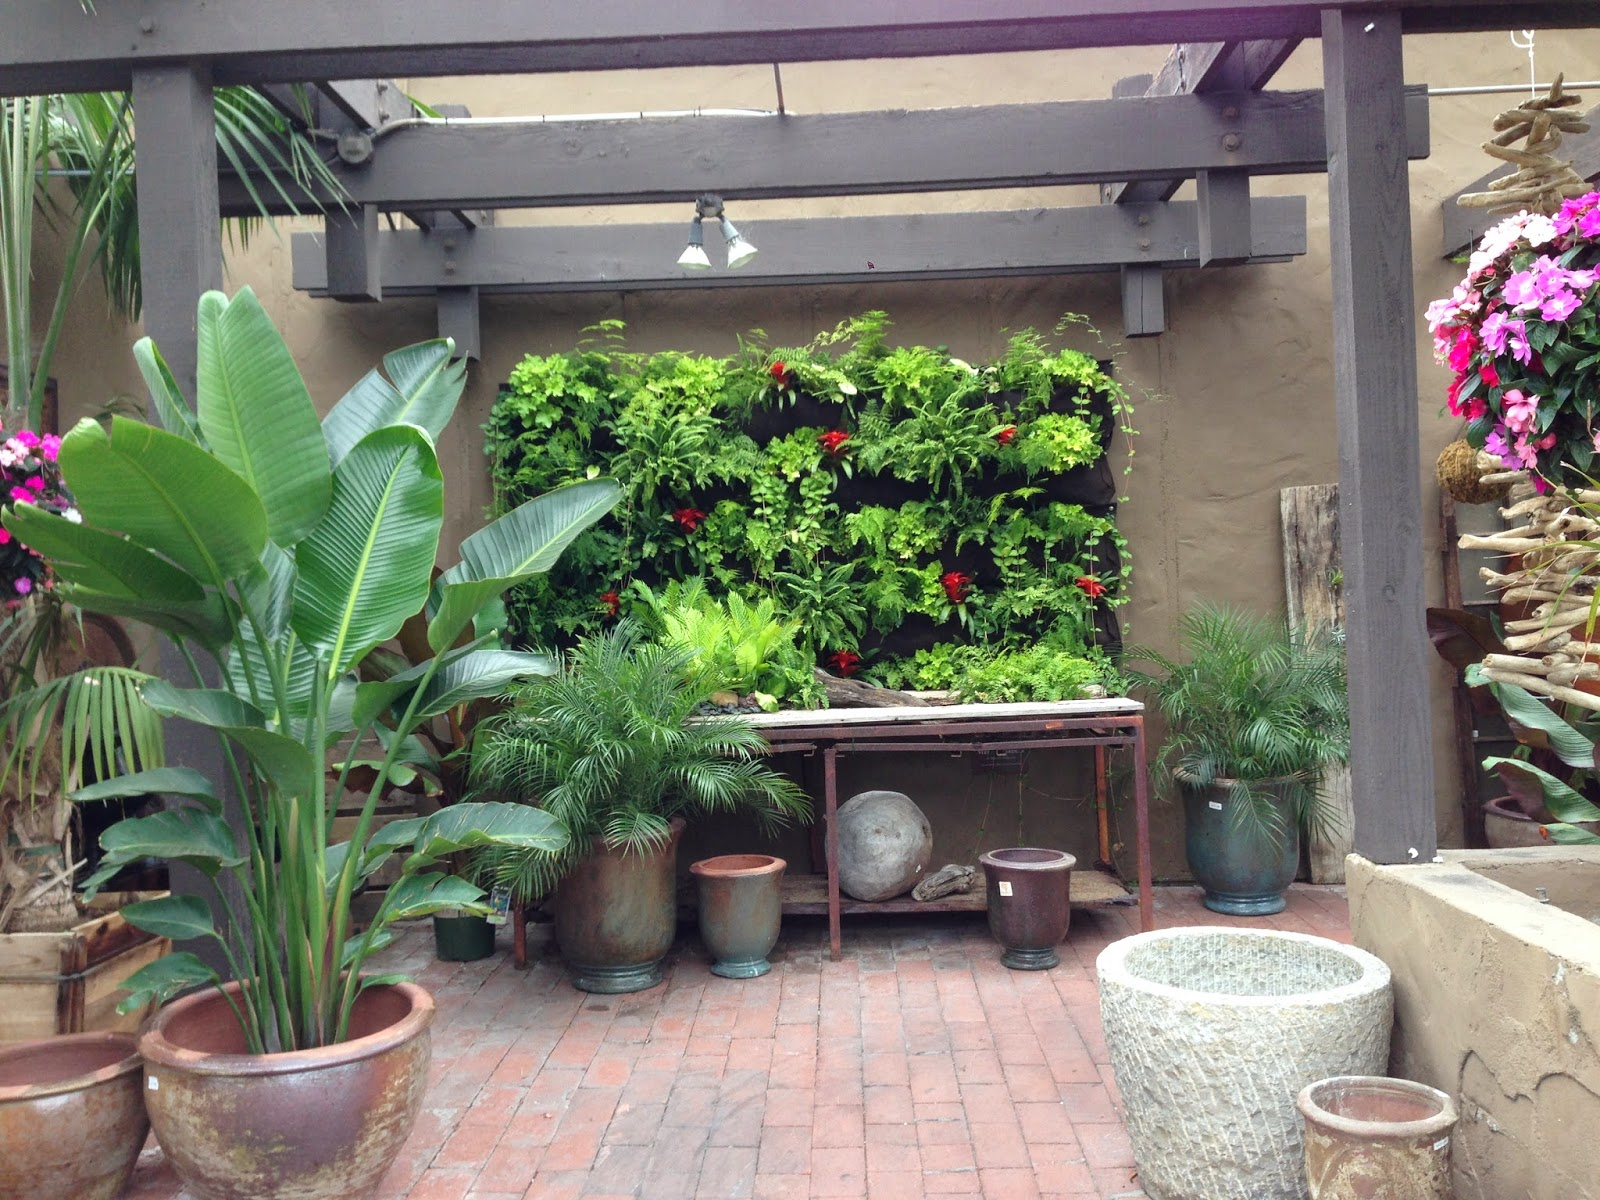 Fine Roger Garden Pictures Inspiration - Landscaping Ideas for ...